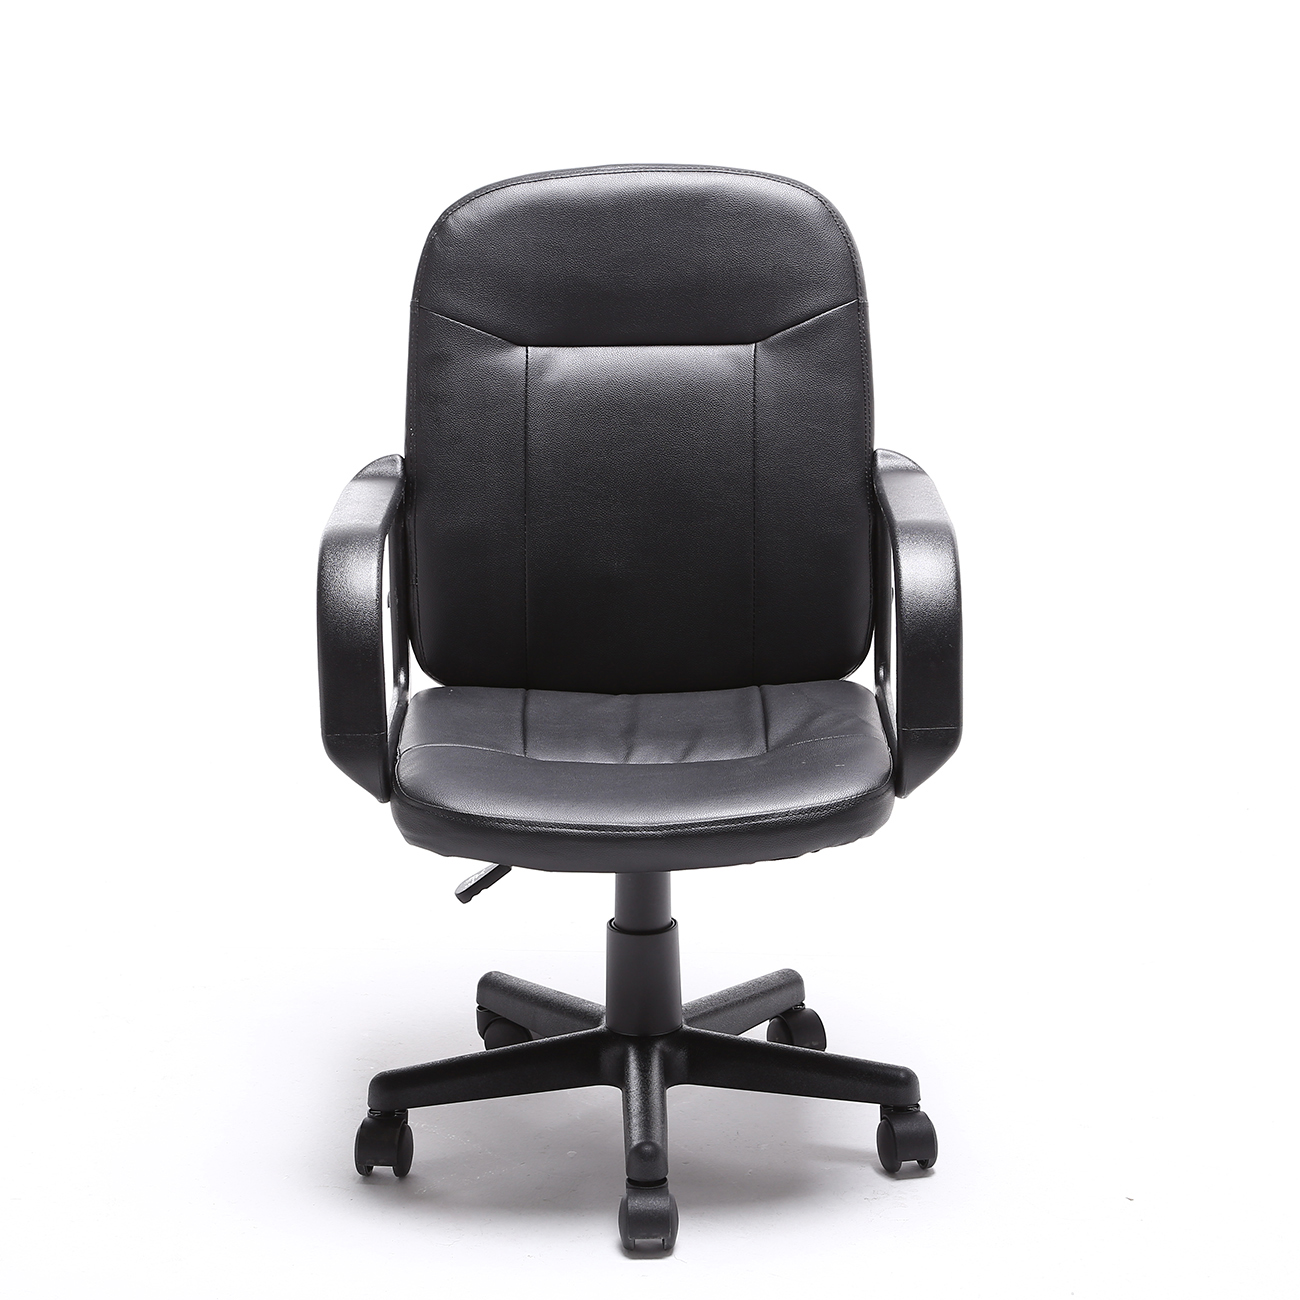 pu leather office chair wicker chairs uk only high back executive ergonomic desk